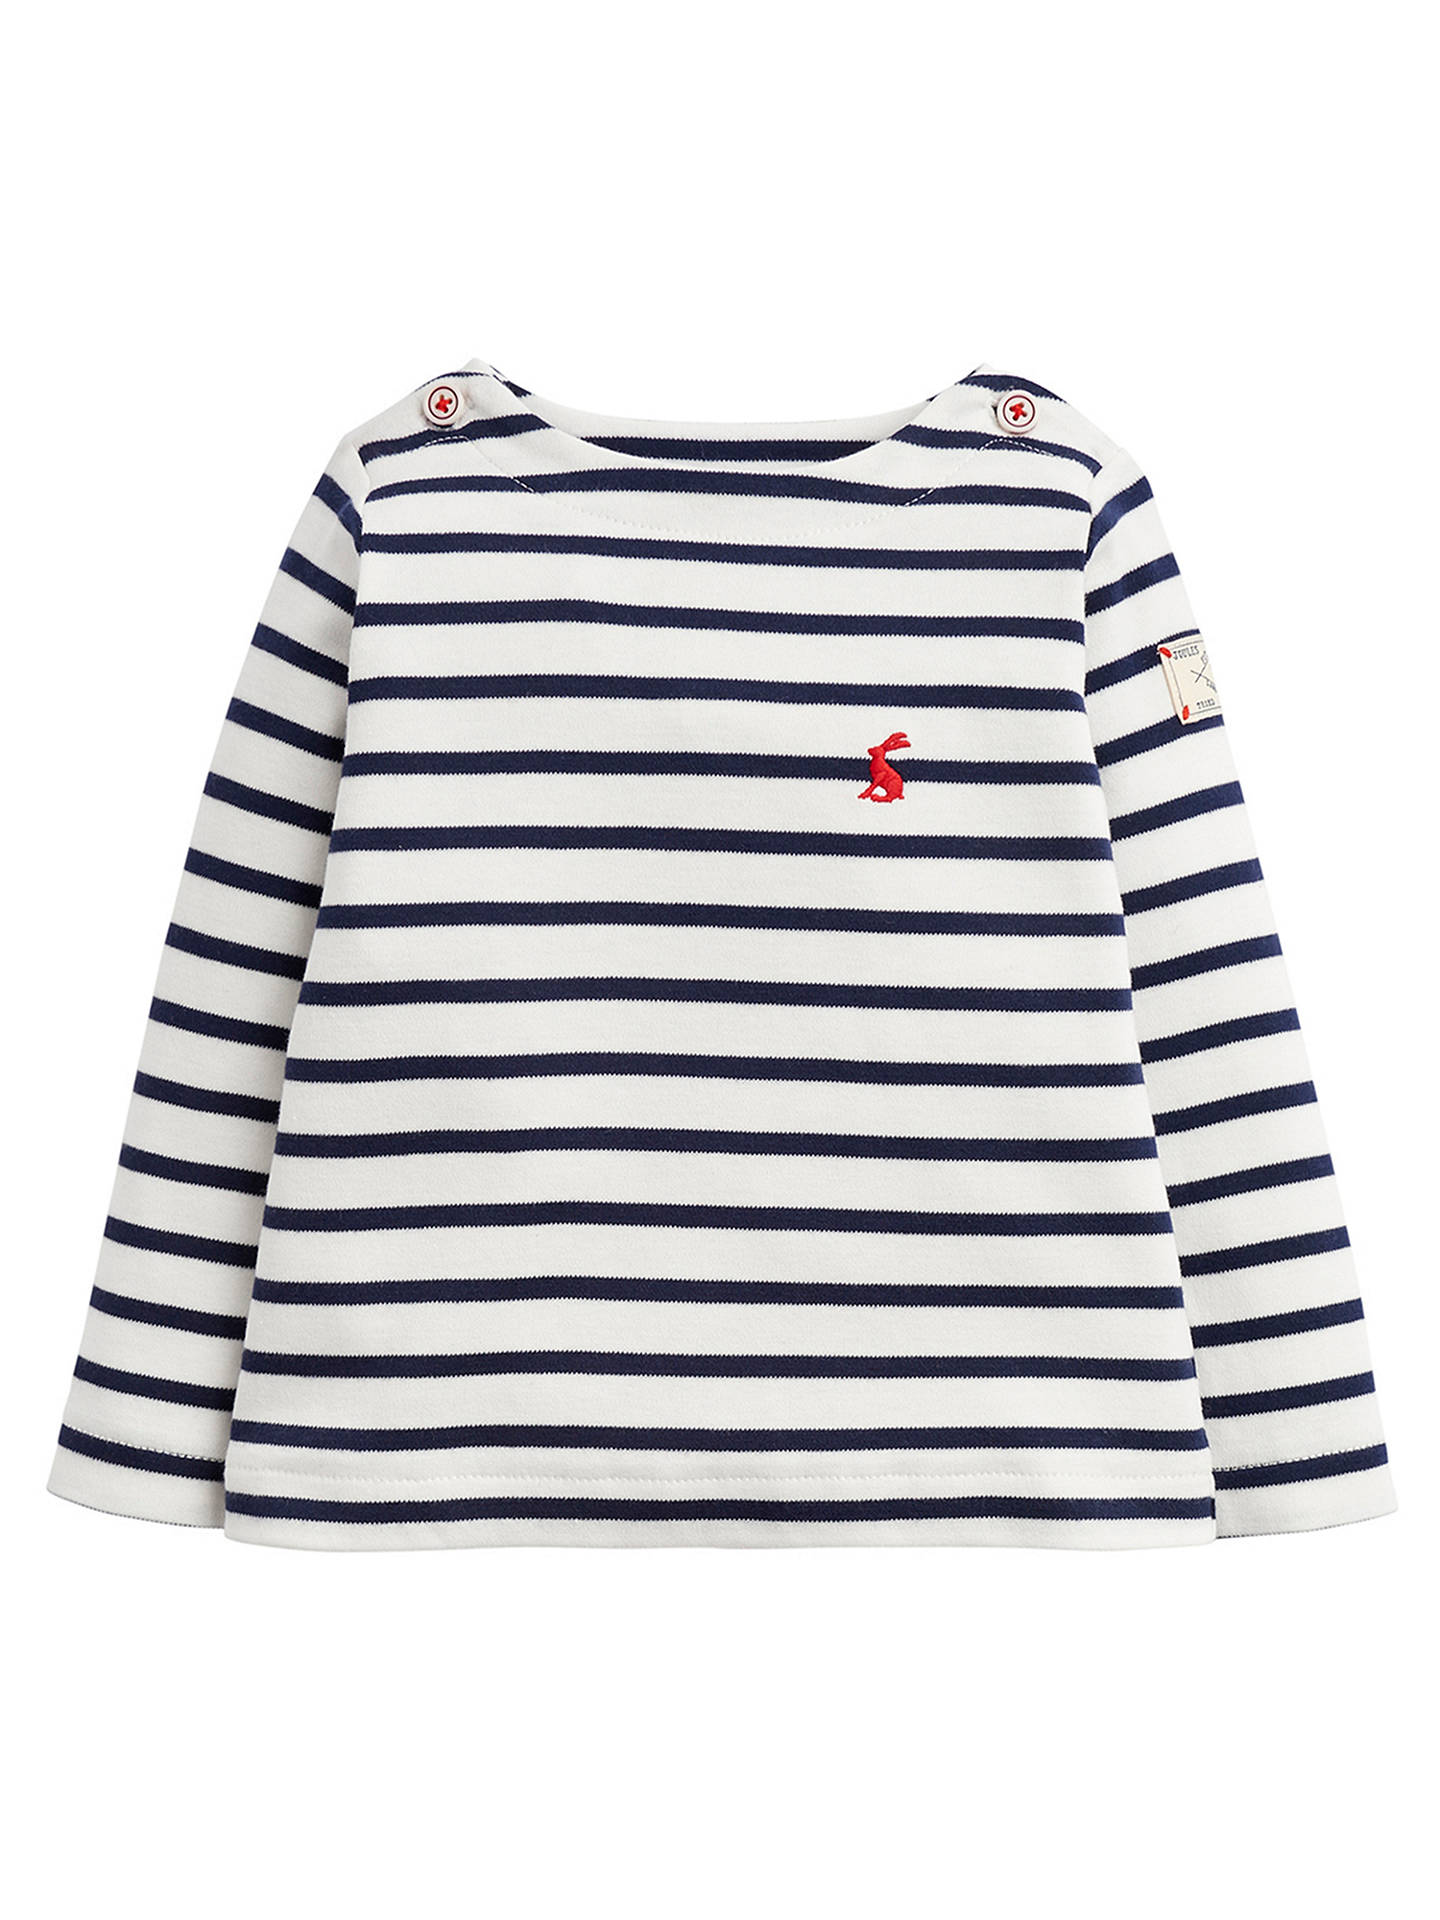 Buy Baby Joule Harbour Stripe Top, Blue/White, 0-3 months Online at johnlewis.com